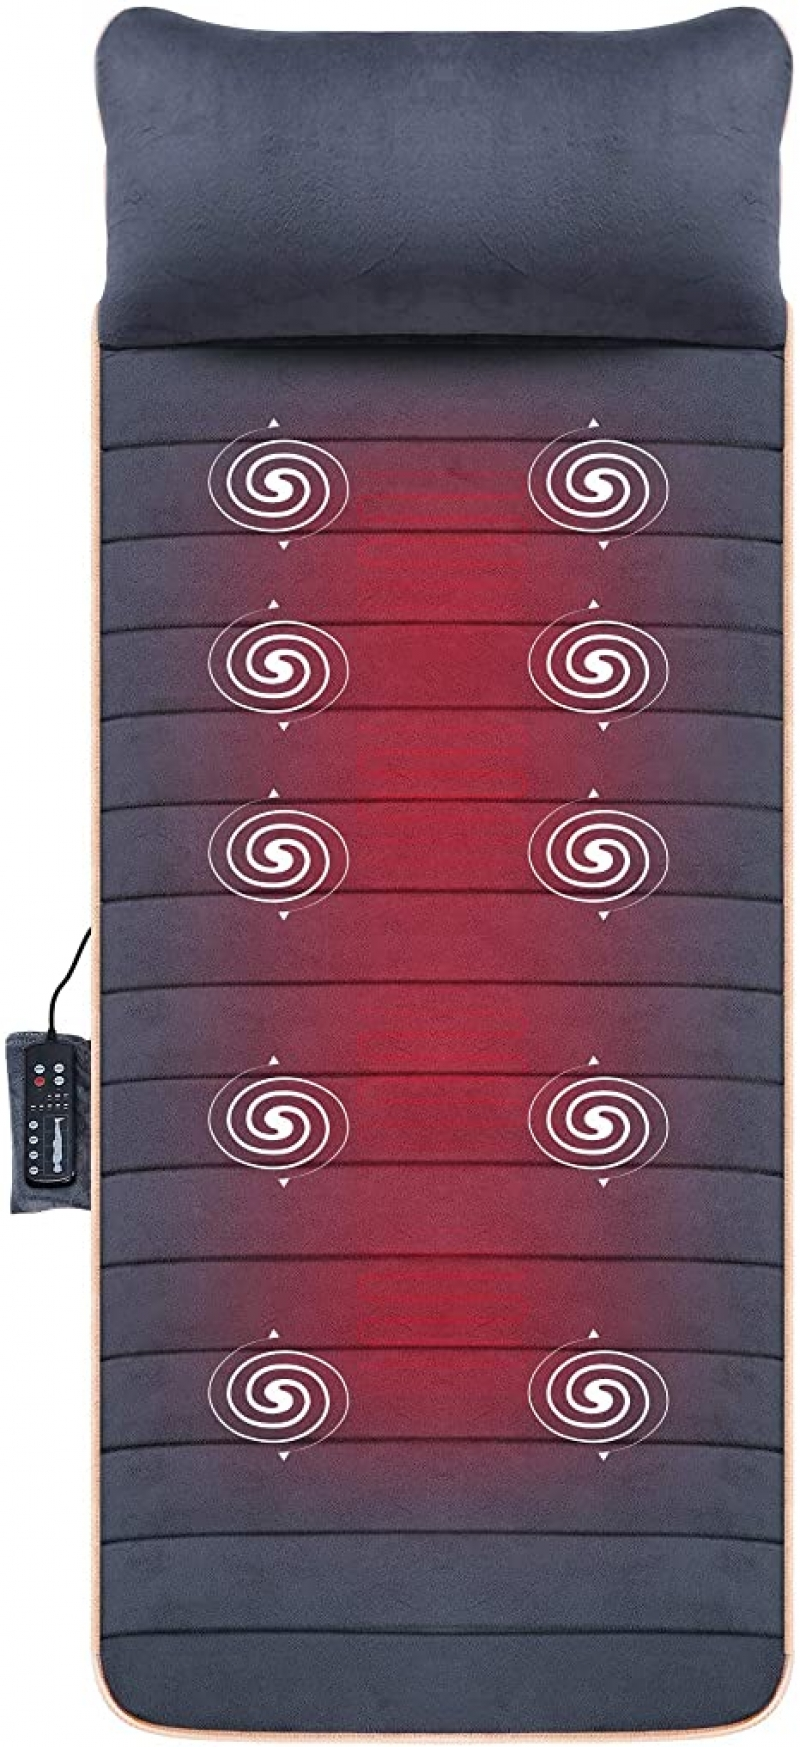 ihocon: Massage Mat with 10 Vibrating Motors and 4 Therapy Heating pad Full Body Massager Cushion 全身加熱按摩墊